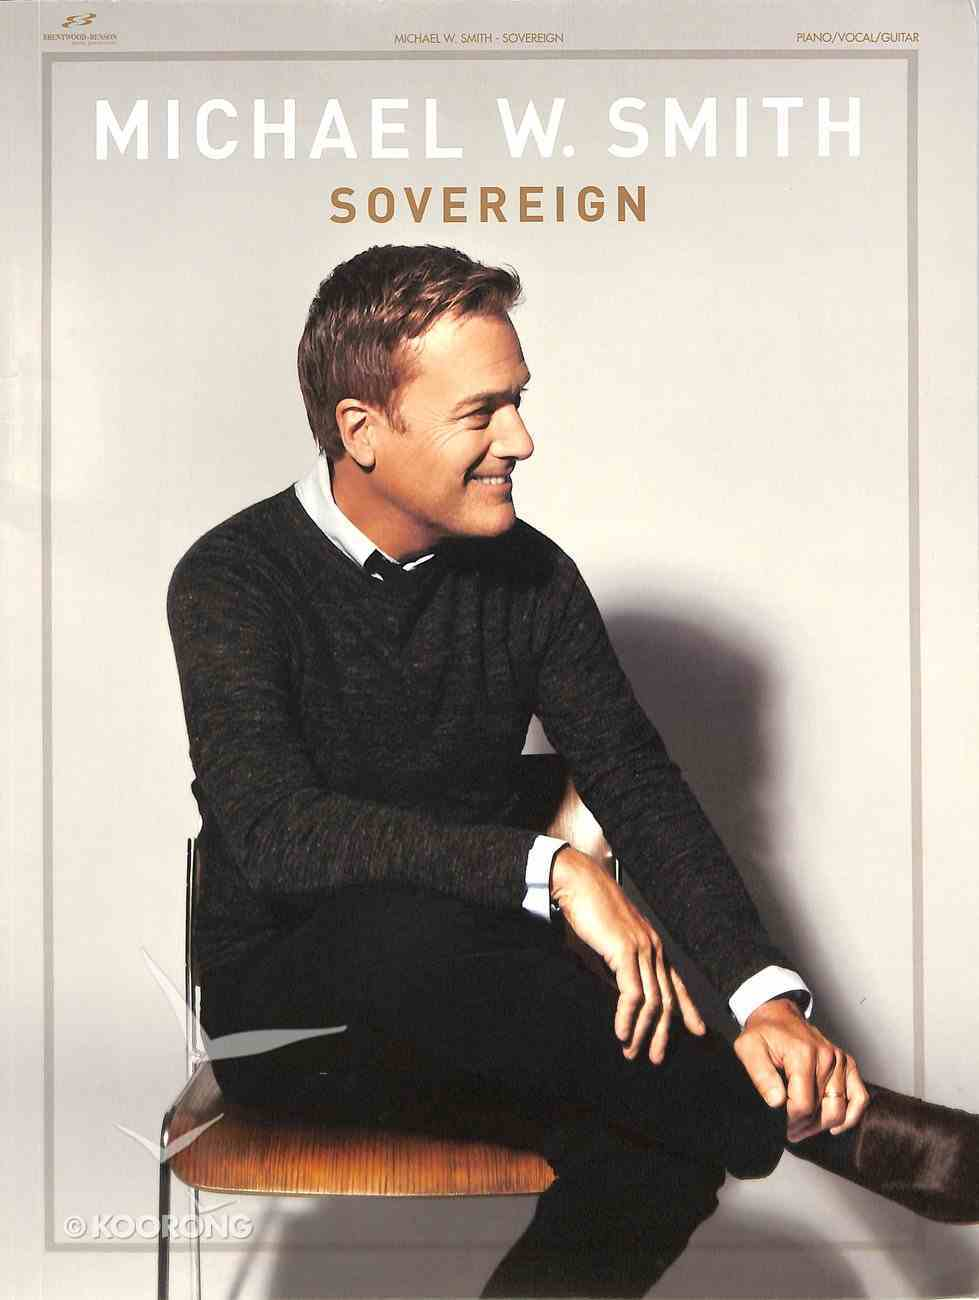 Sovereign Songbook Paperback